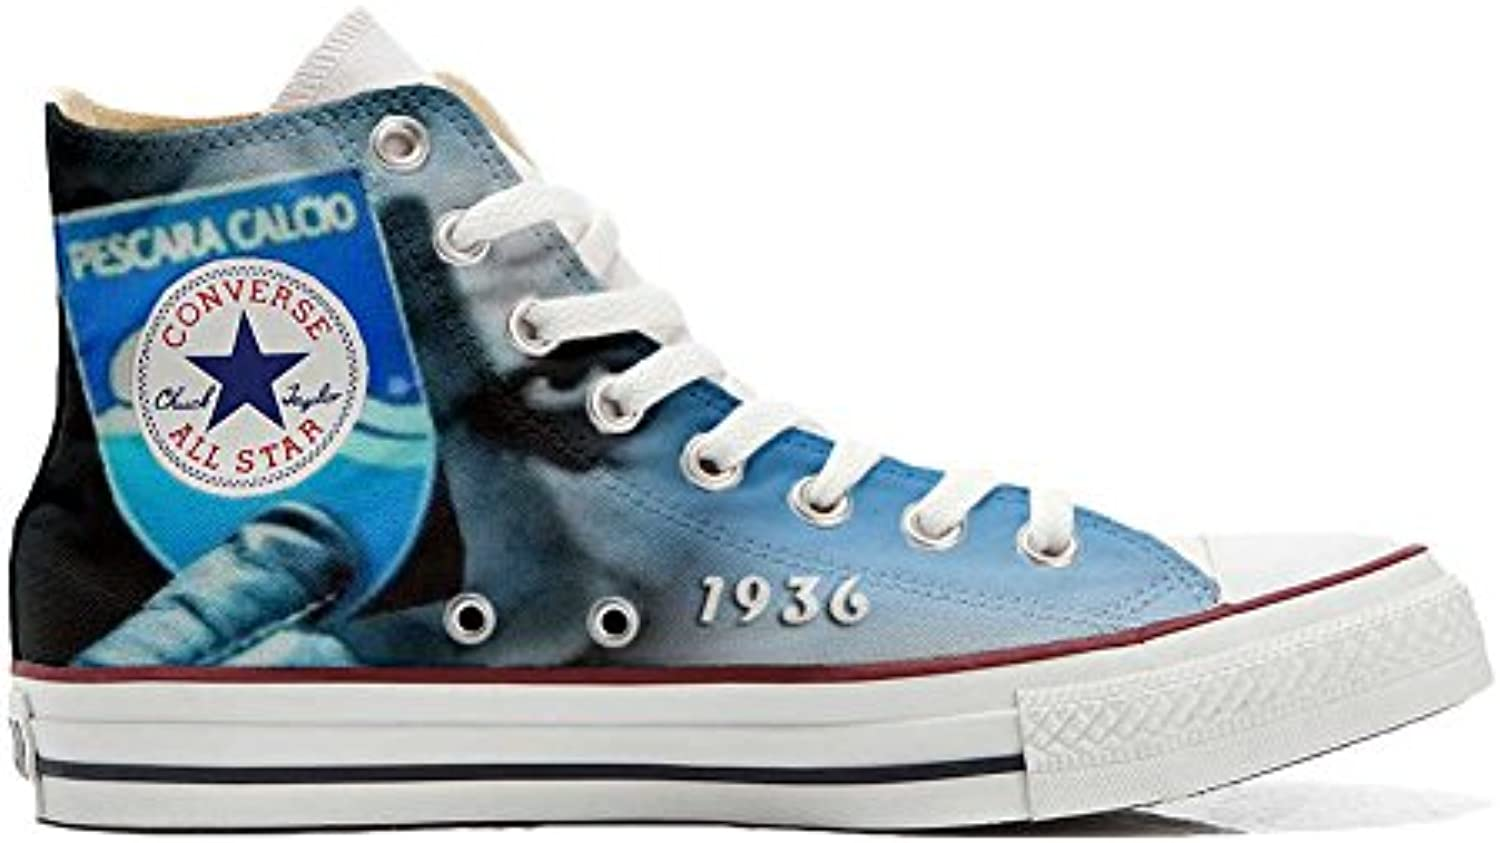 mys Converse All Star Personalisierte Schuhe   Handmade Shoes   Italian Soccer